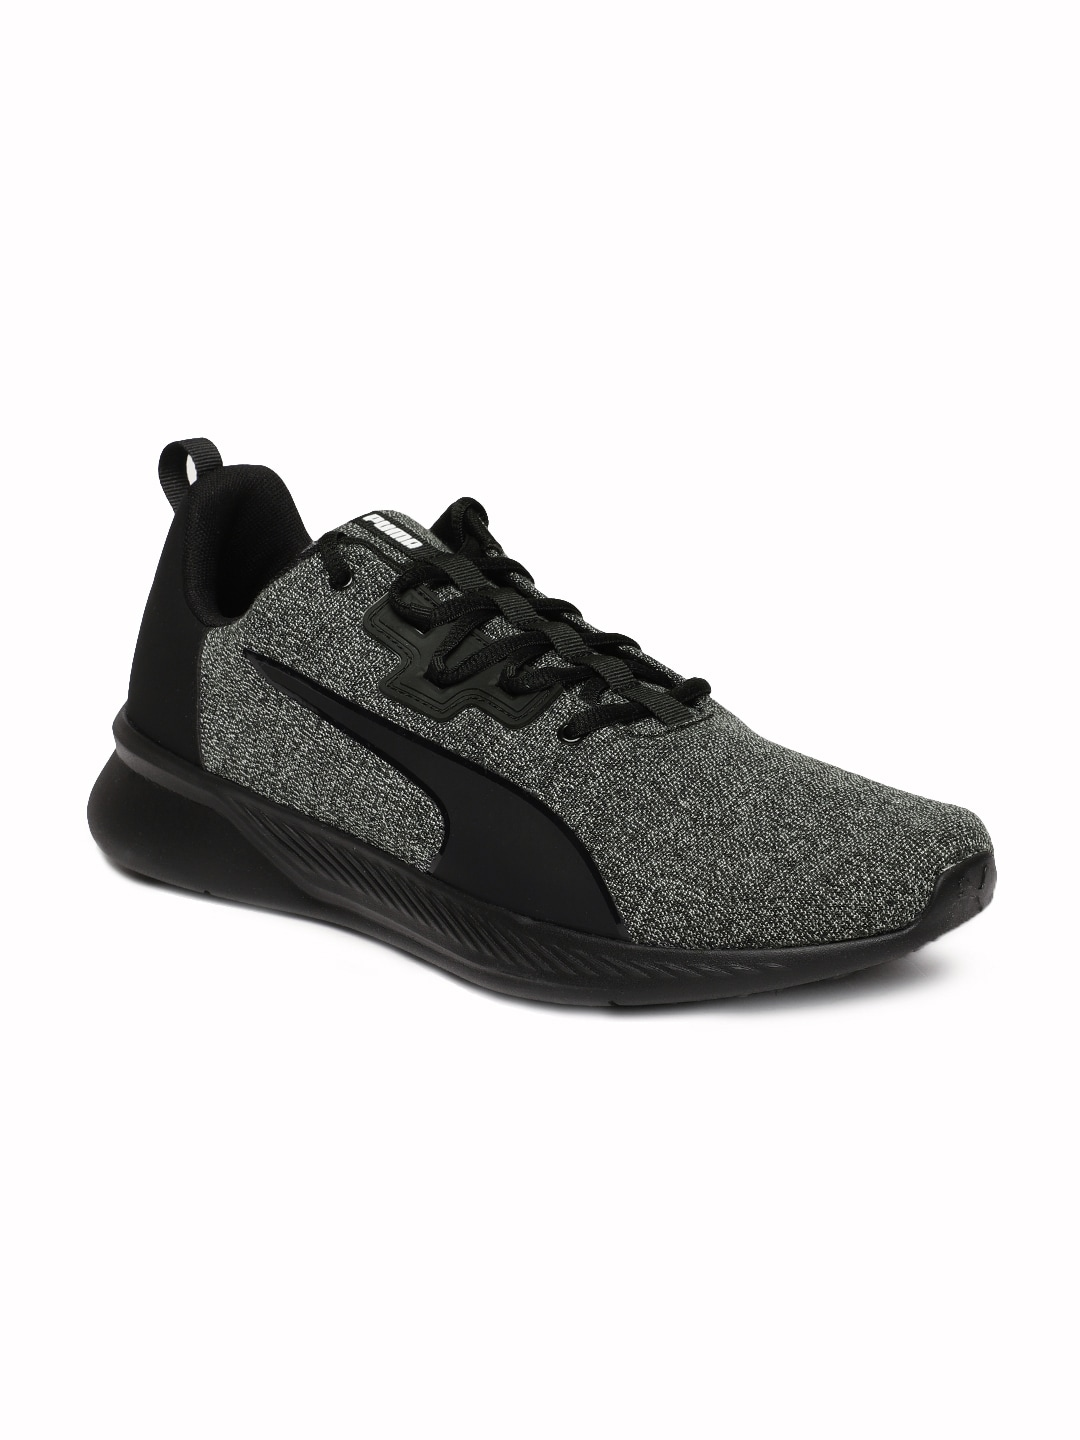 Puma Shoes - Buy Puma Shoes for Men   Women Online in India 45342fa4f